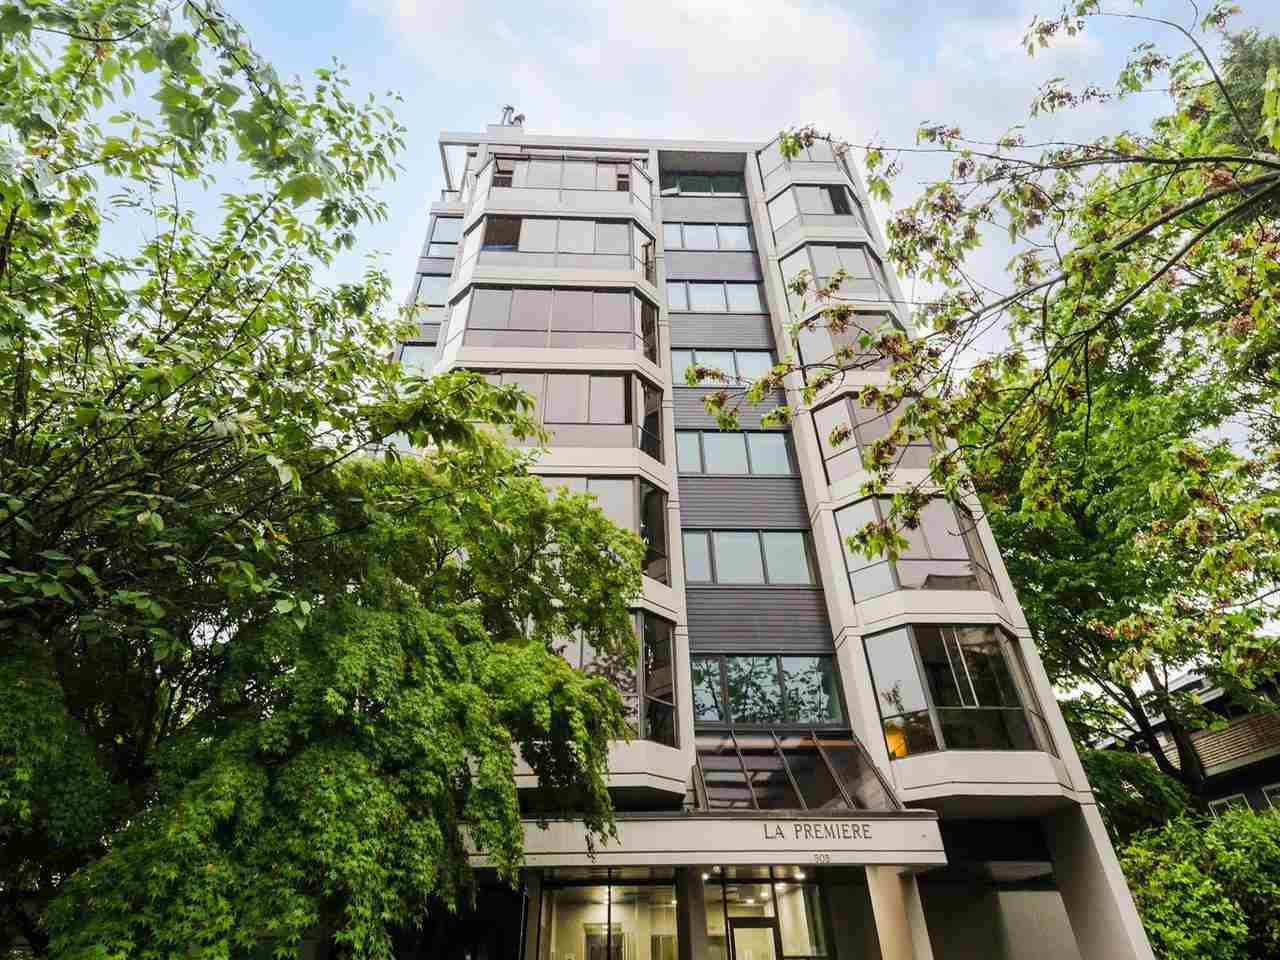 203 505 LONSDALE AVENUE - Lower Lonsdale Apartment/Condo for sale, 2 Bedrooms (R2576011) - #1